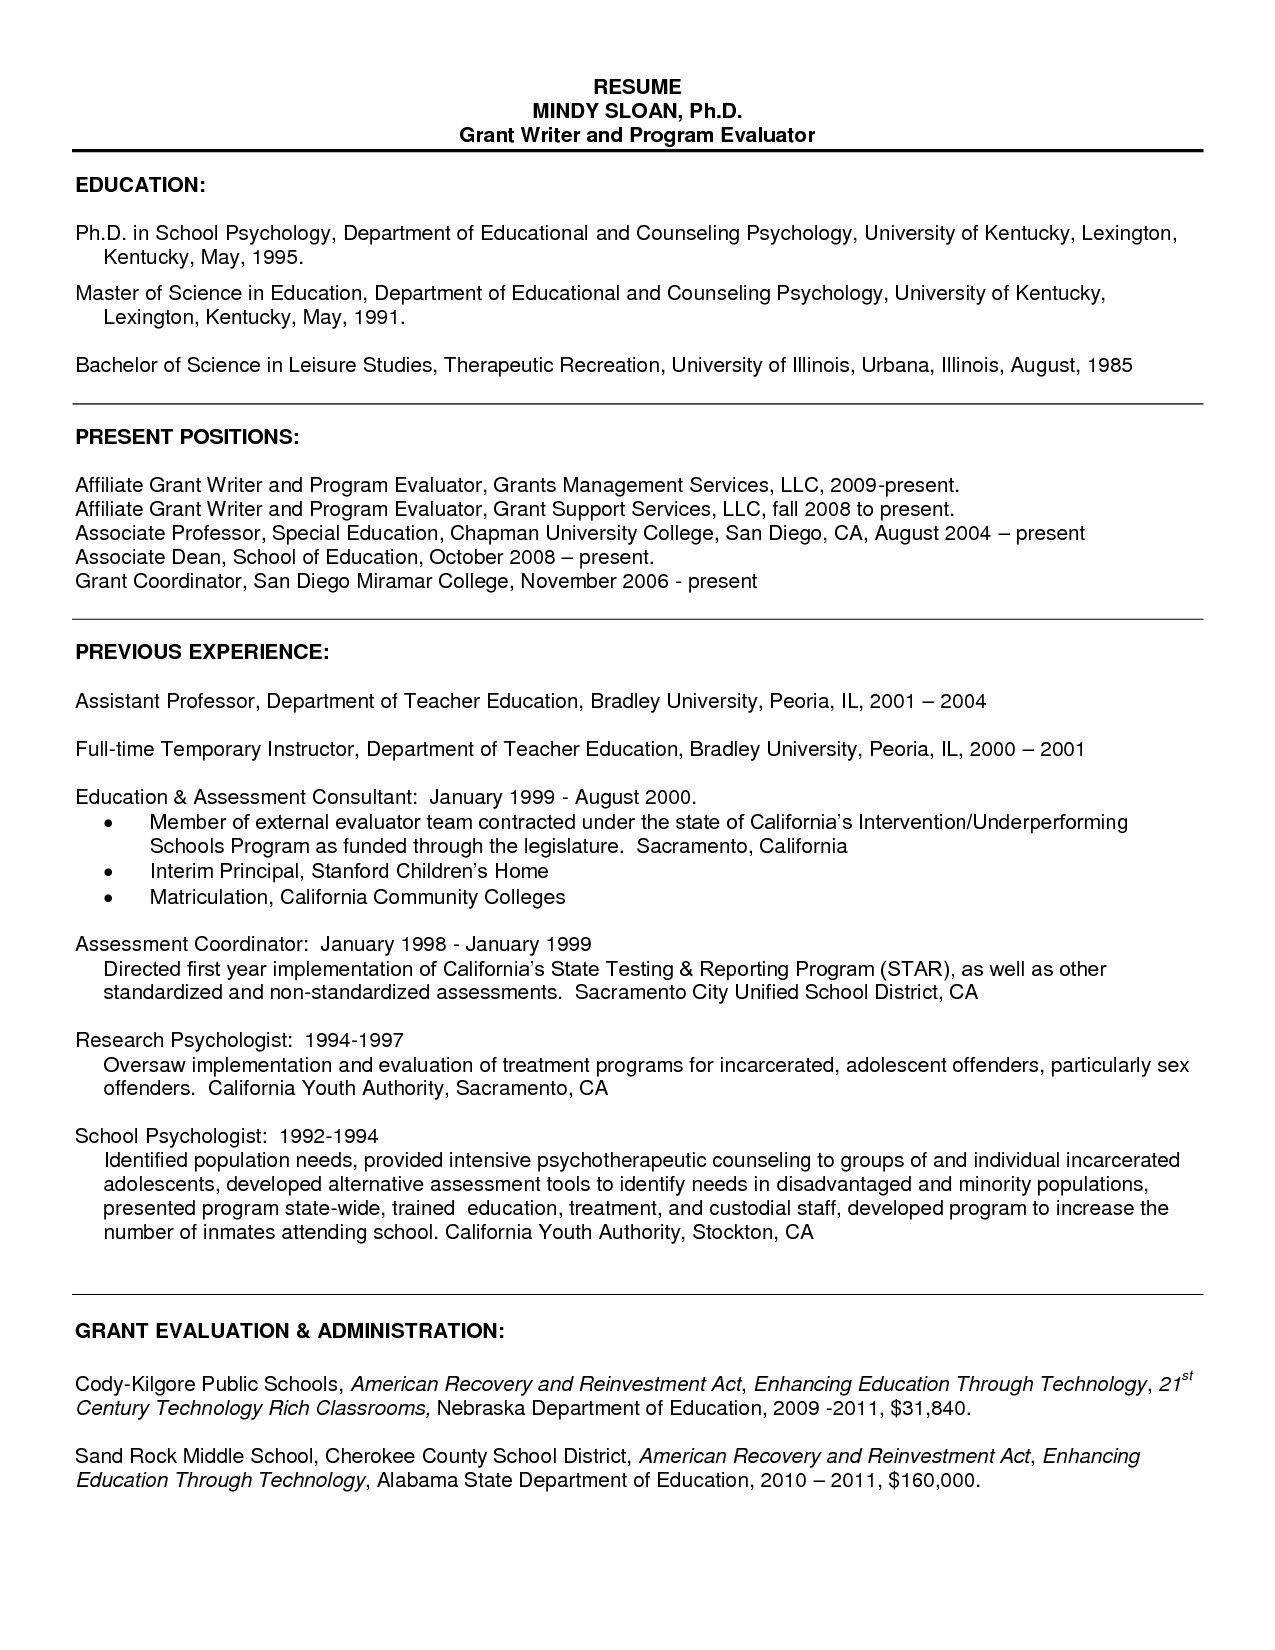 Resume Statement Examples Resume Sample For Psychology Graduate  Resume Sample For